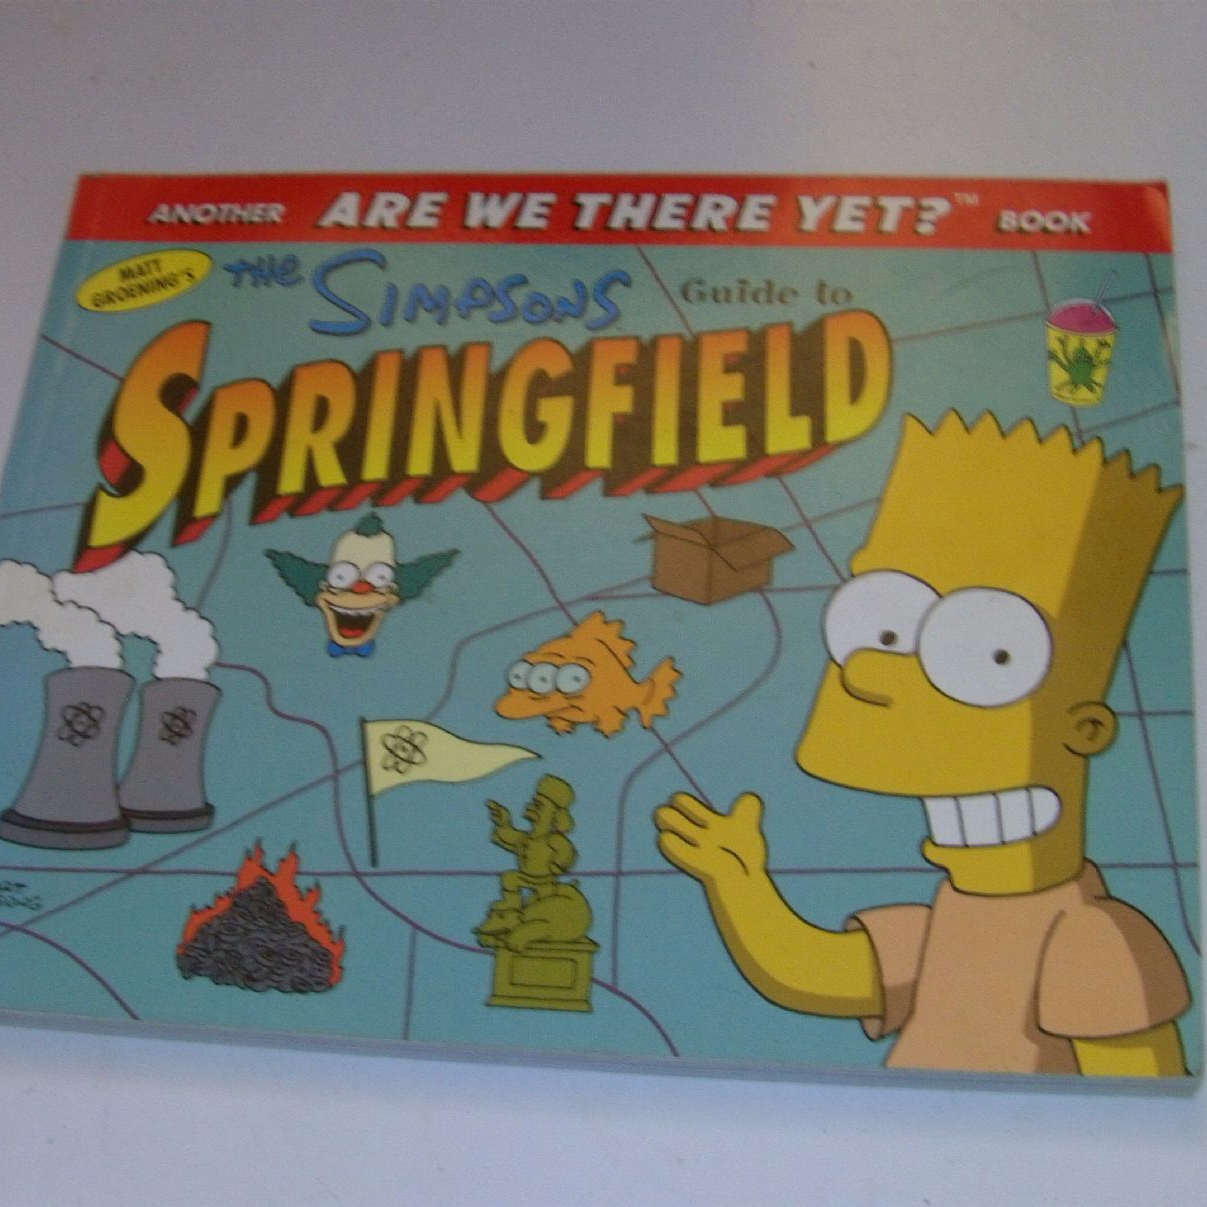 the simpsons guide to springfield are we there yet book rh eterniacollectables co uk Simpsons Springfield Statue The Simpsons Springfield Elementary School